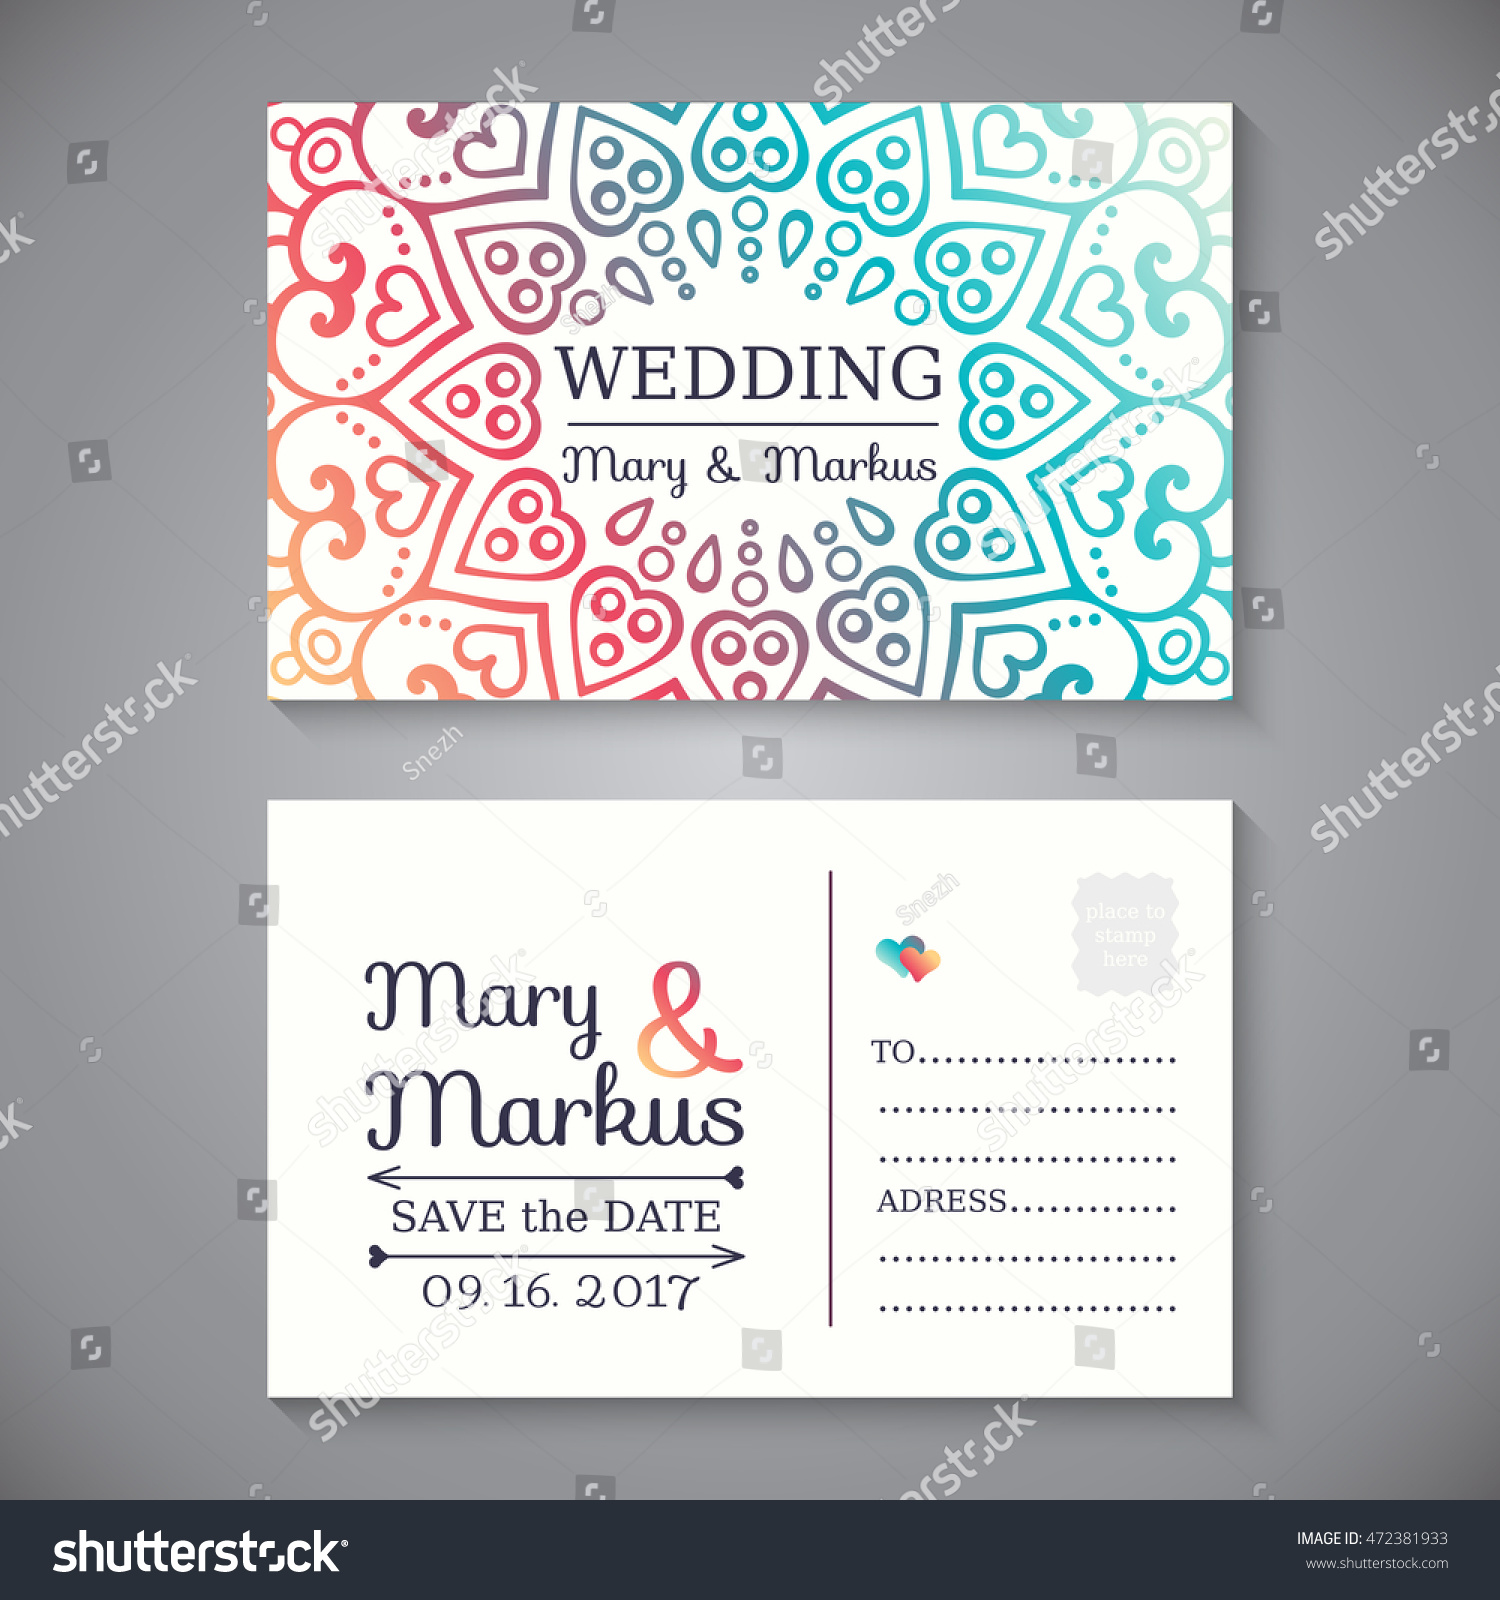 Exxon business credit card choice image free business cards arabic business cards choice image free business cards business card vintage decorative elements ornamental stock vector magicingreecefo Image collections